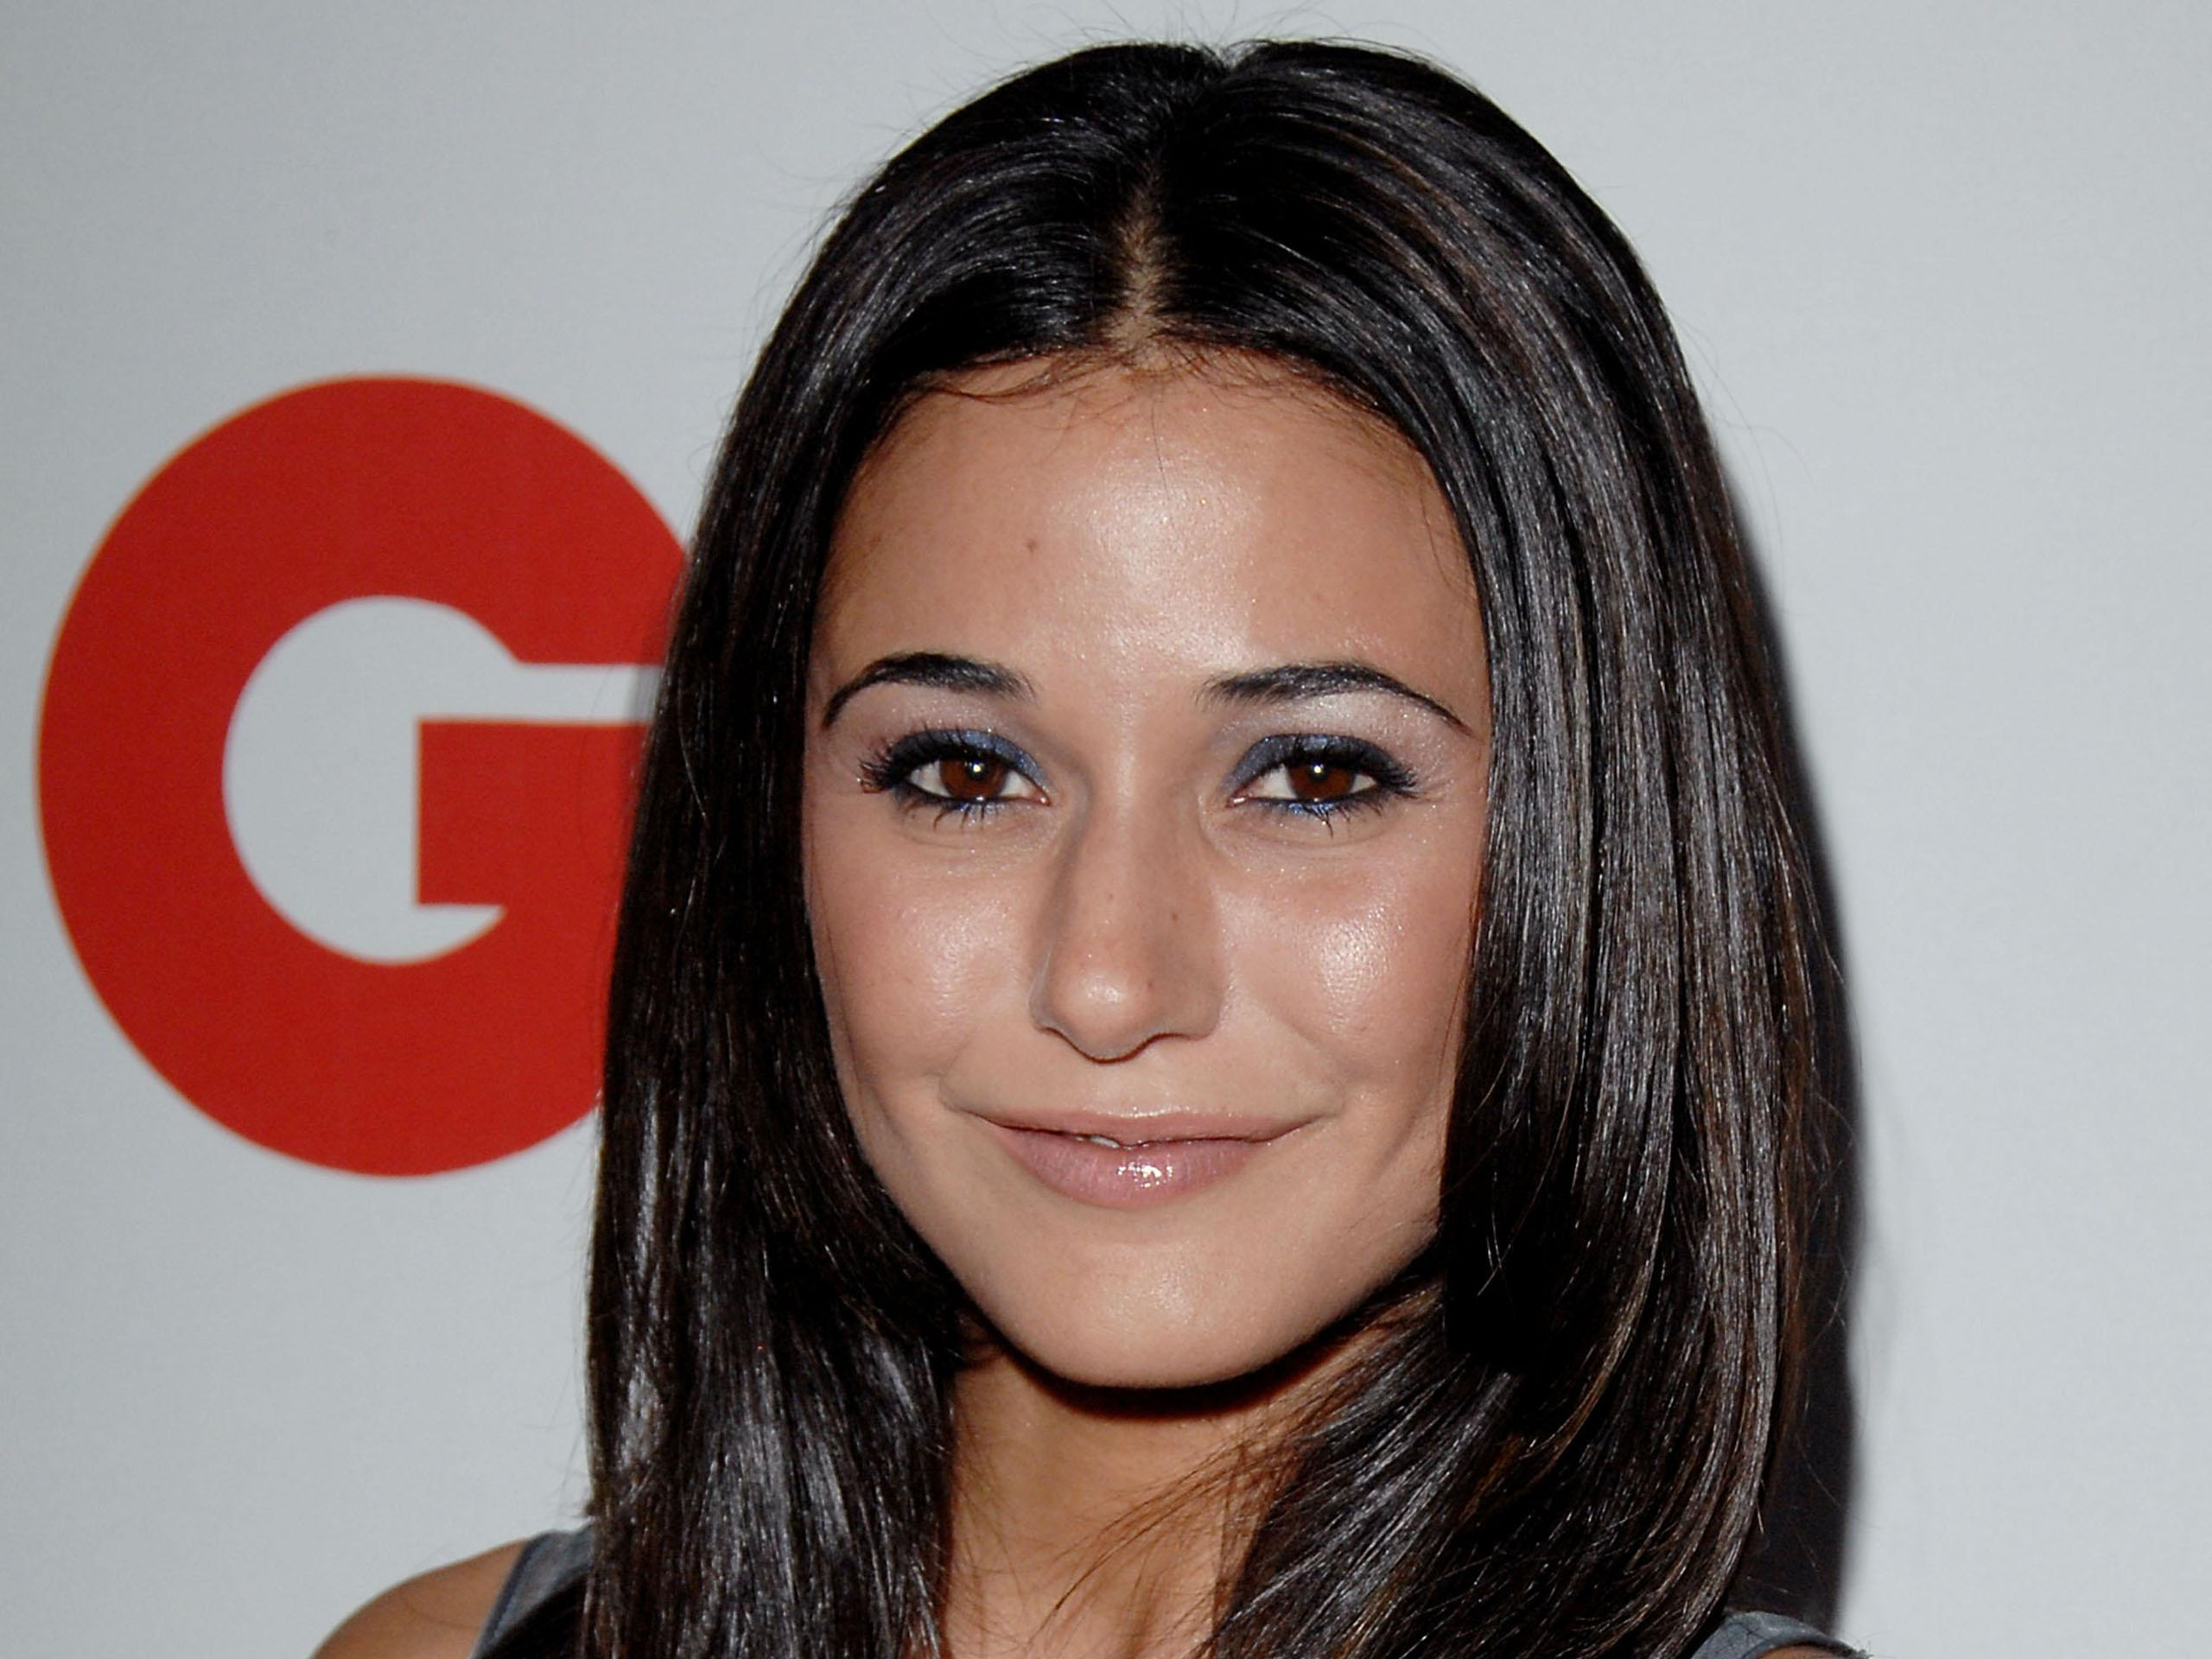 http://www.thewallpapers.org/photo/29241/emmanuelle-chriqui-044.jpg